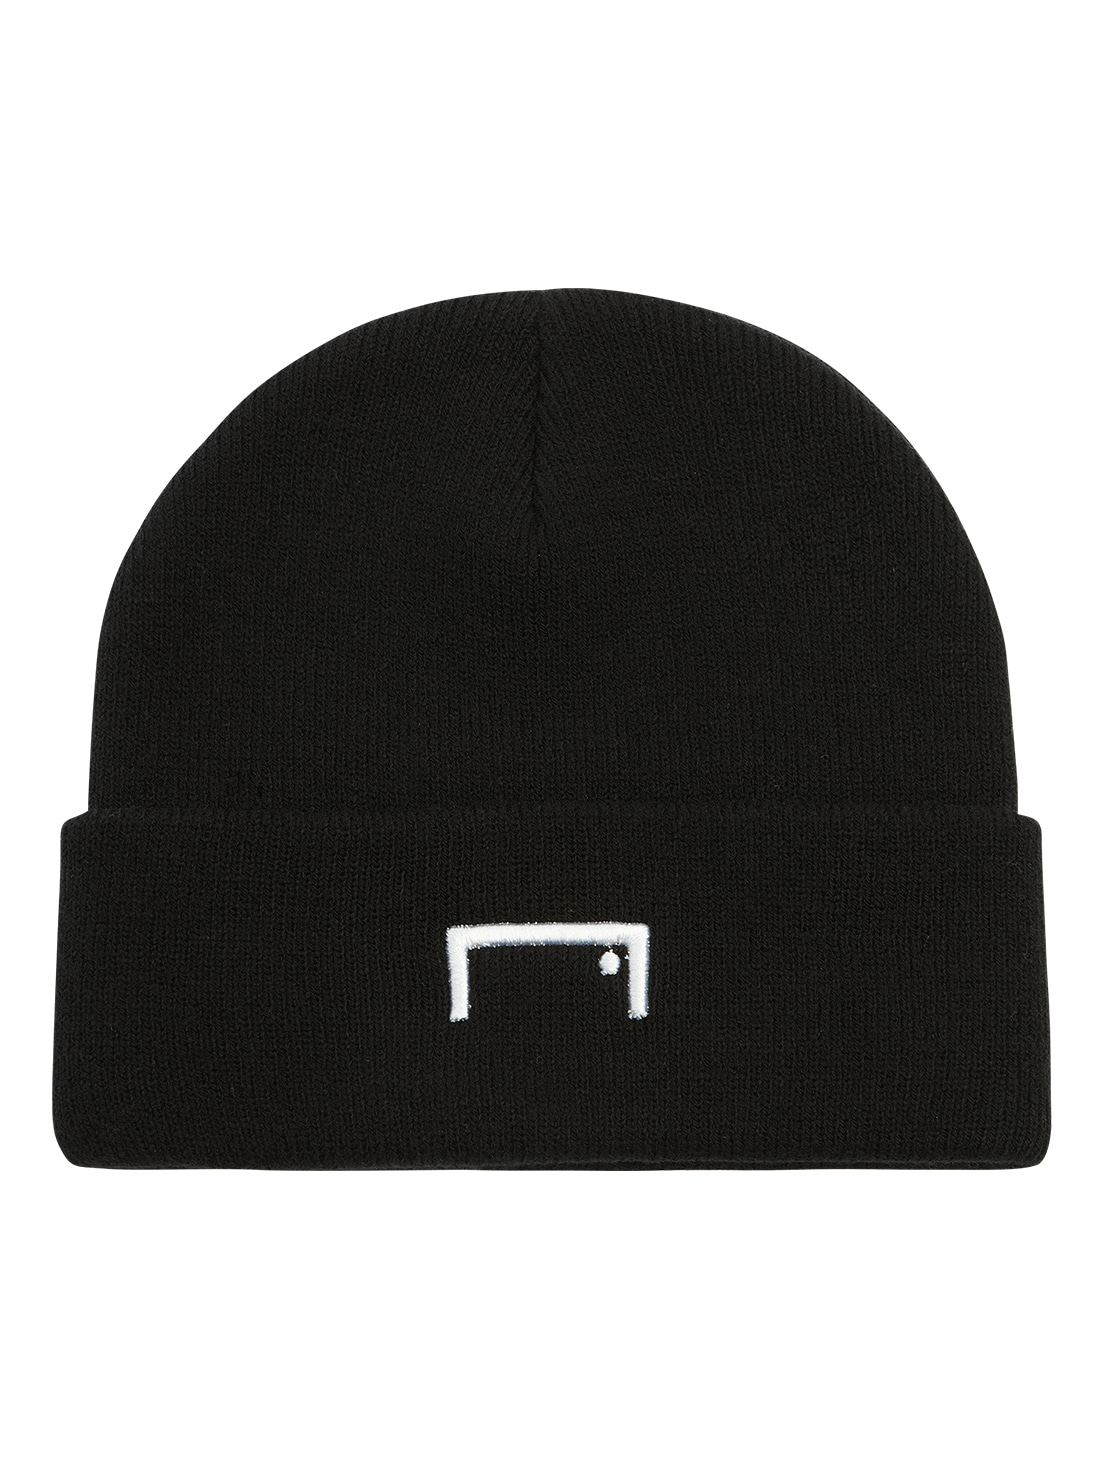 RESPECT LABEL BEANIE - BLACK